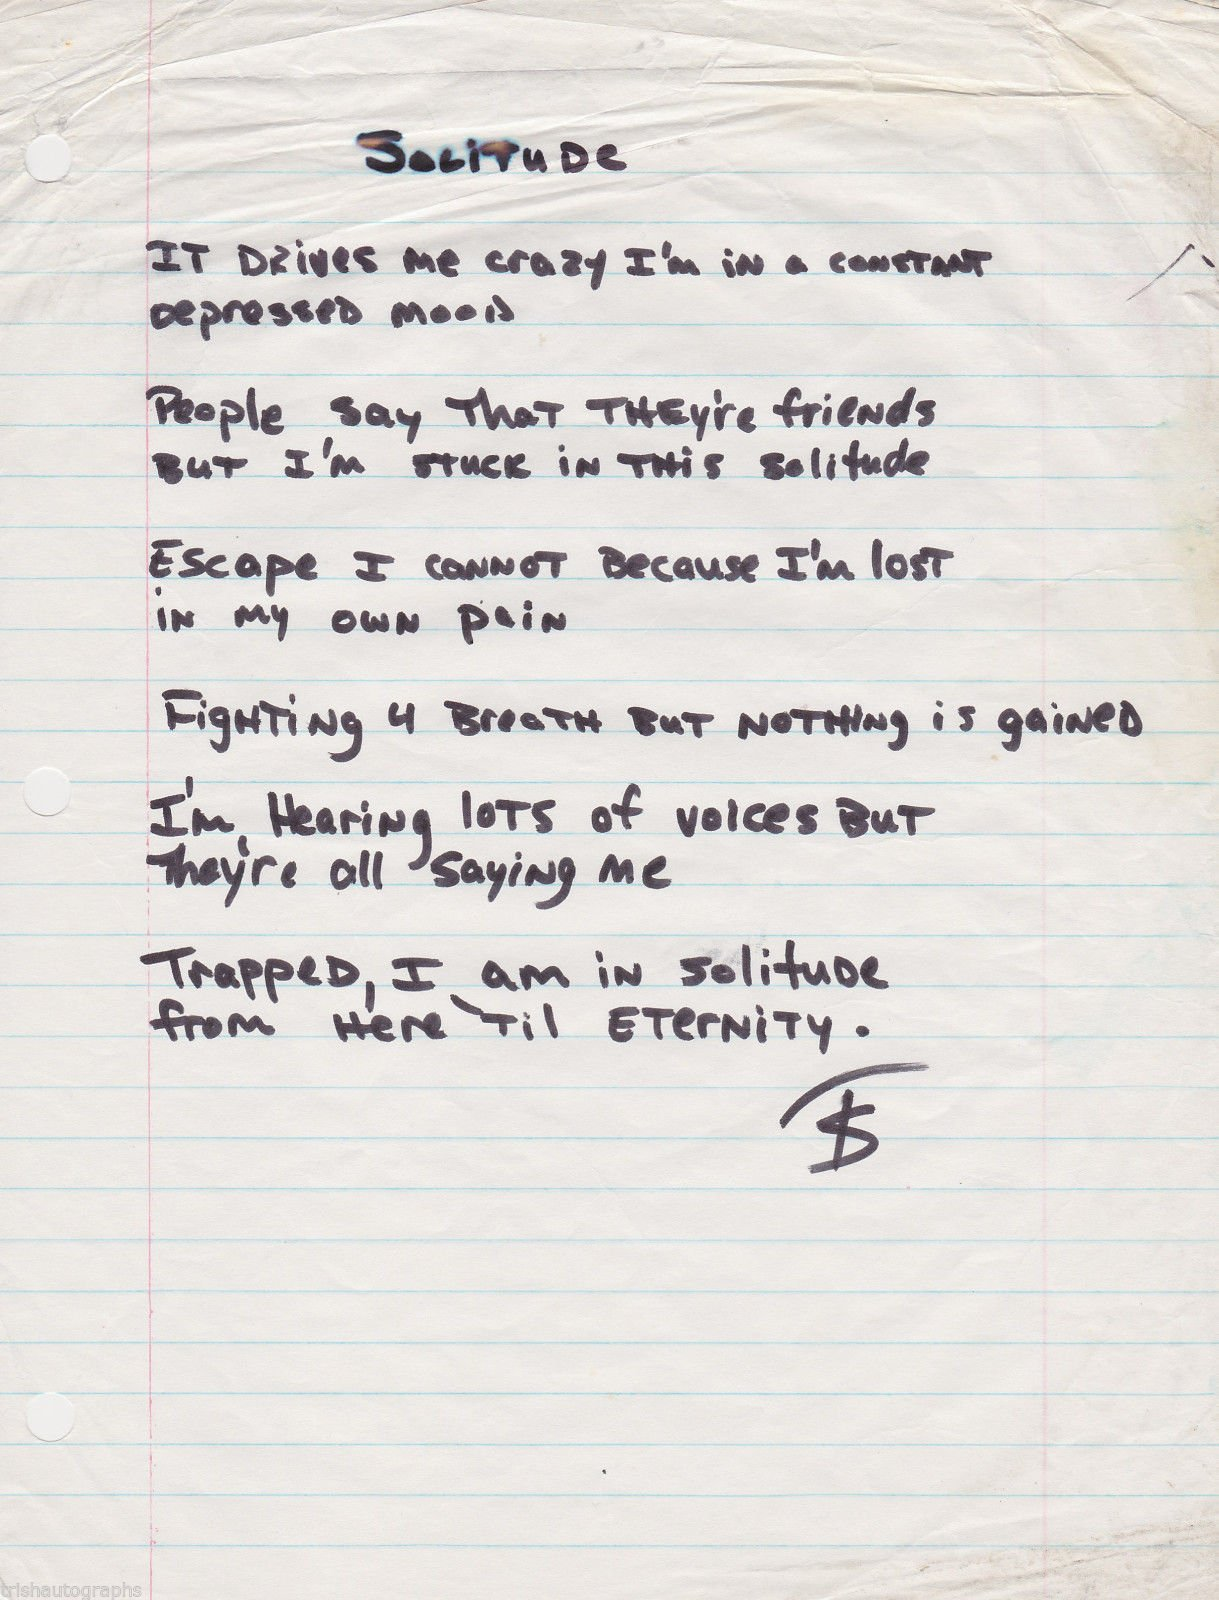 Solitude - Tupac's Handwritten Poem